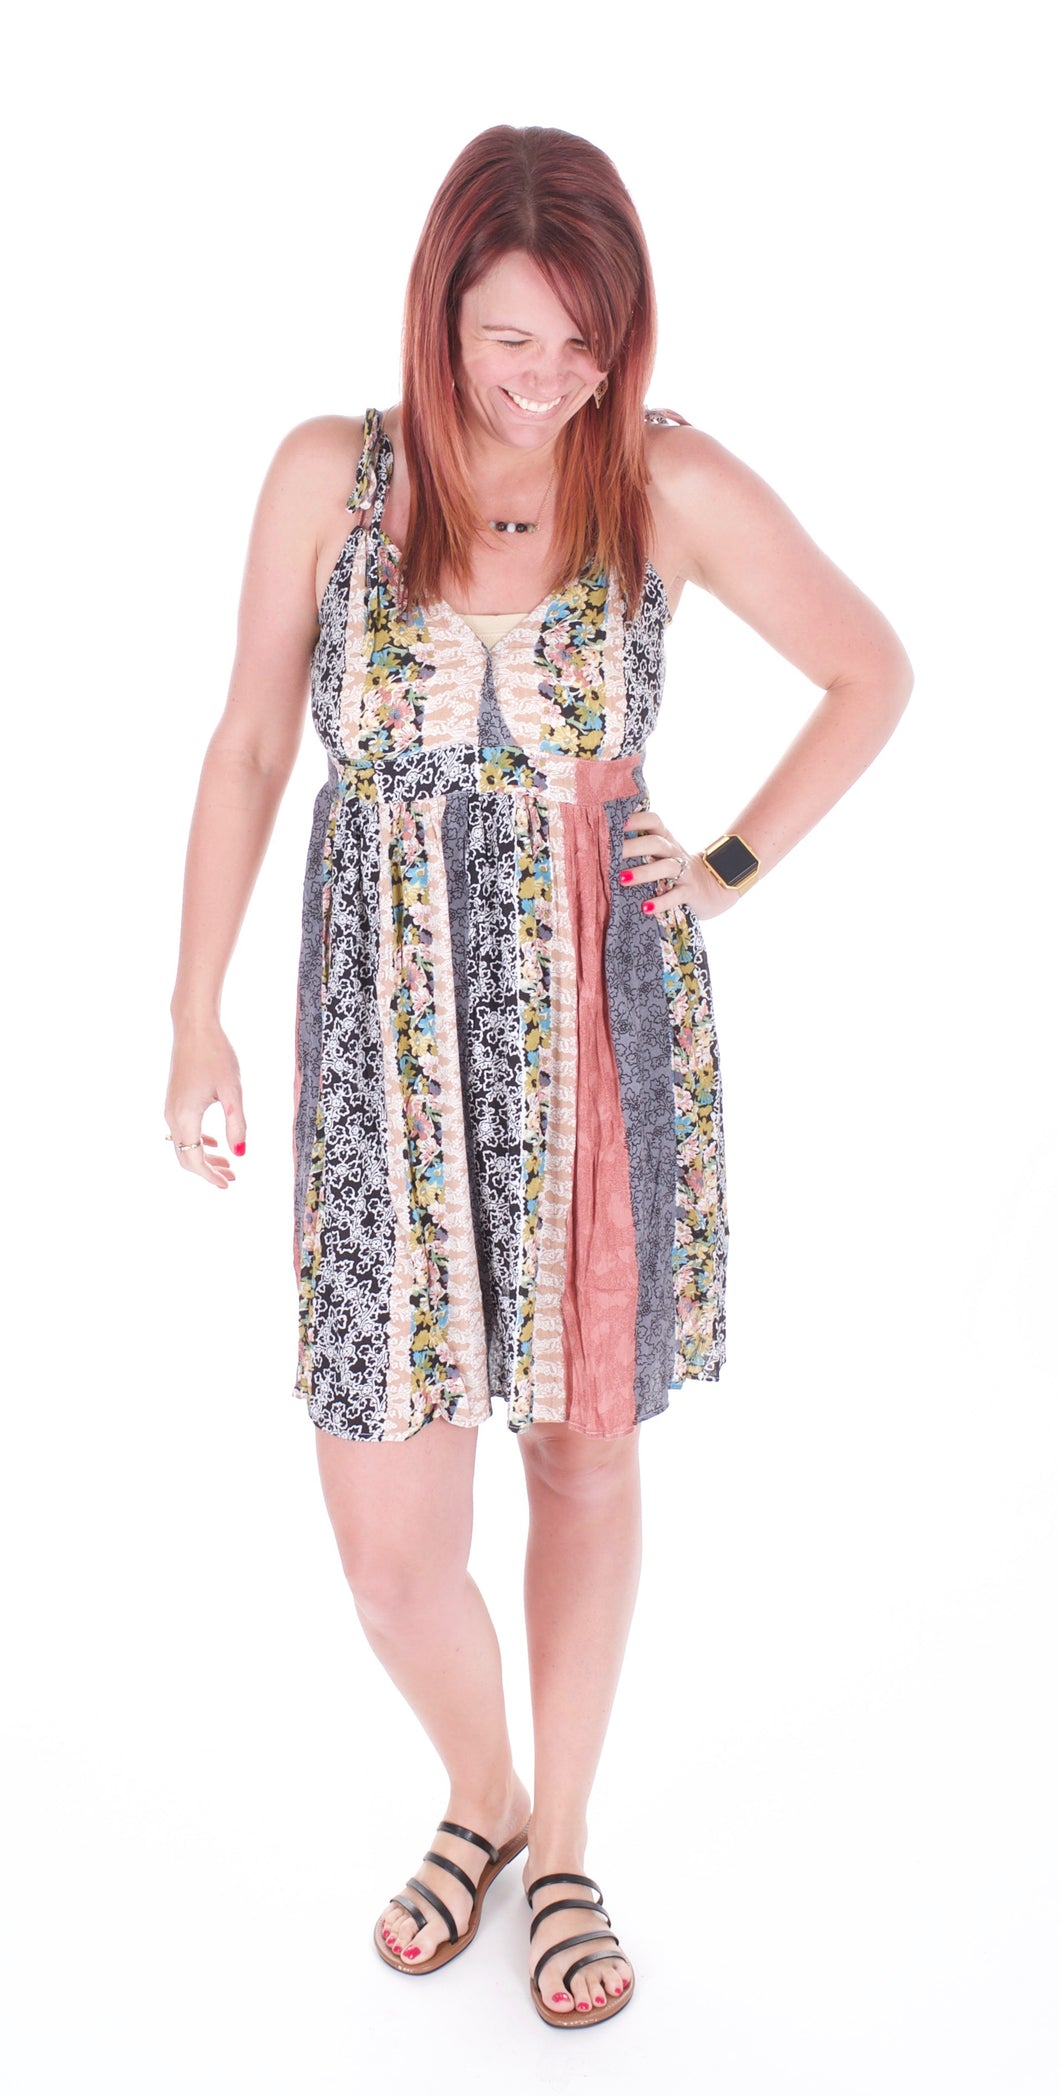 Summer Festival Dress - Adventurista Boutique